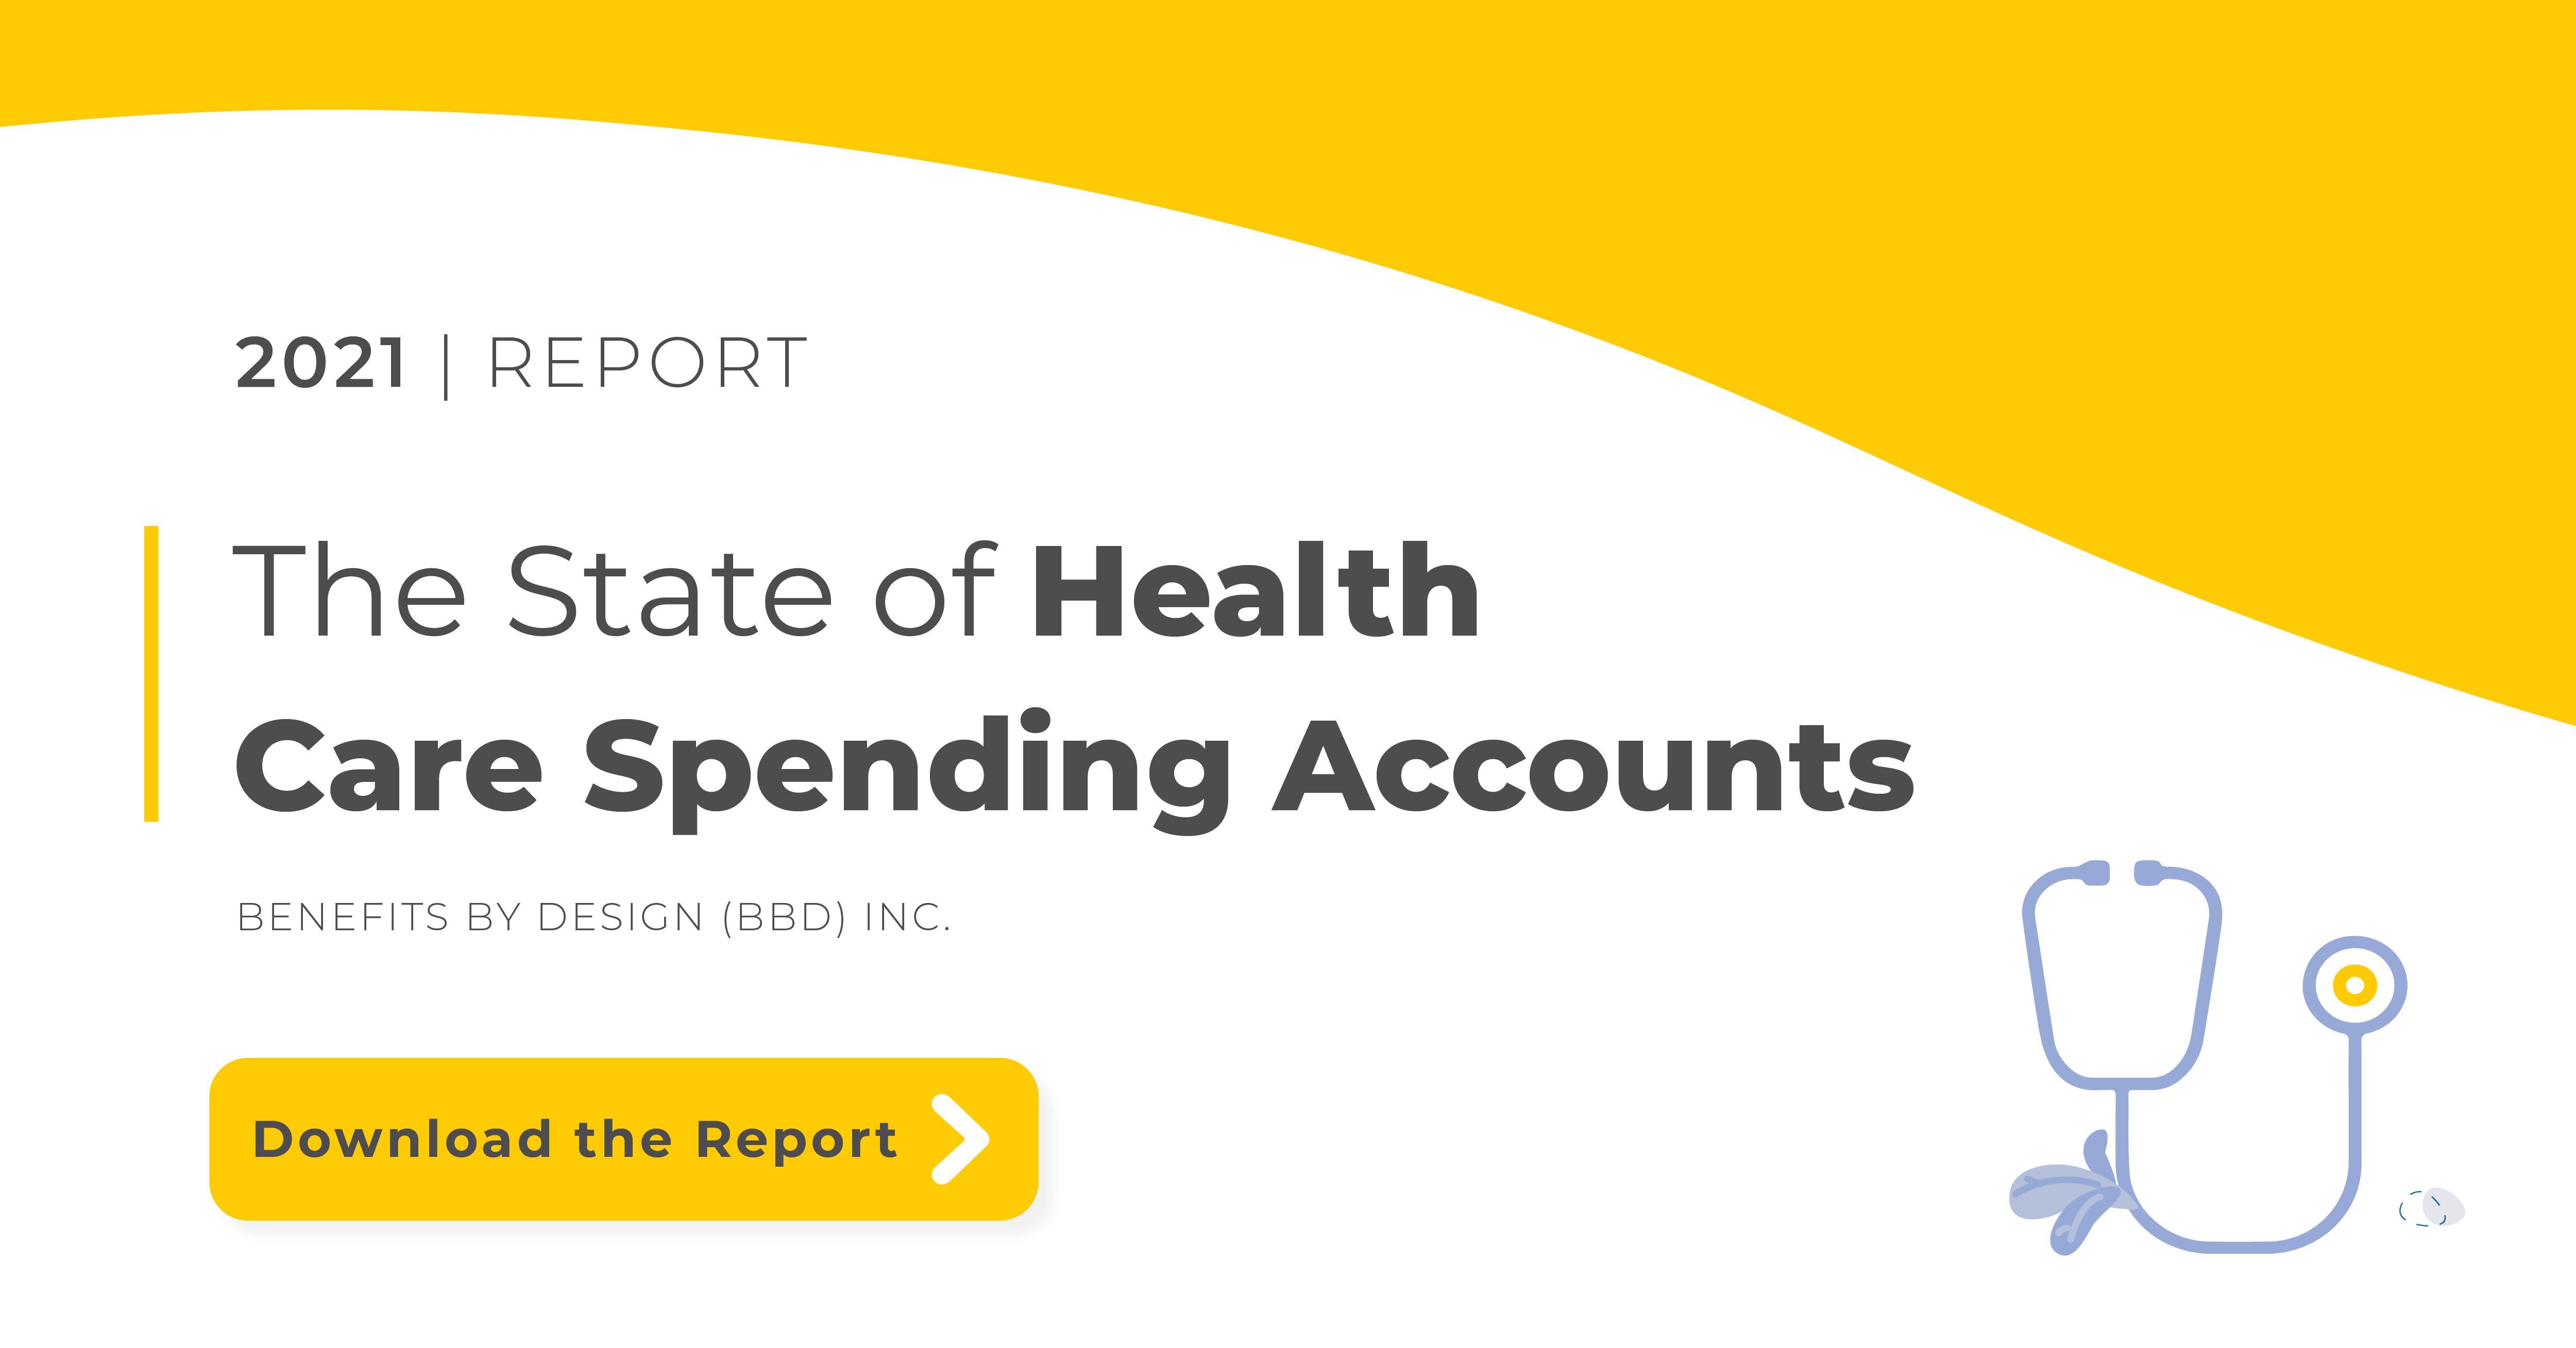 The State of Health Care Spending Accounts